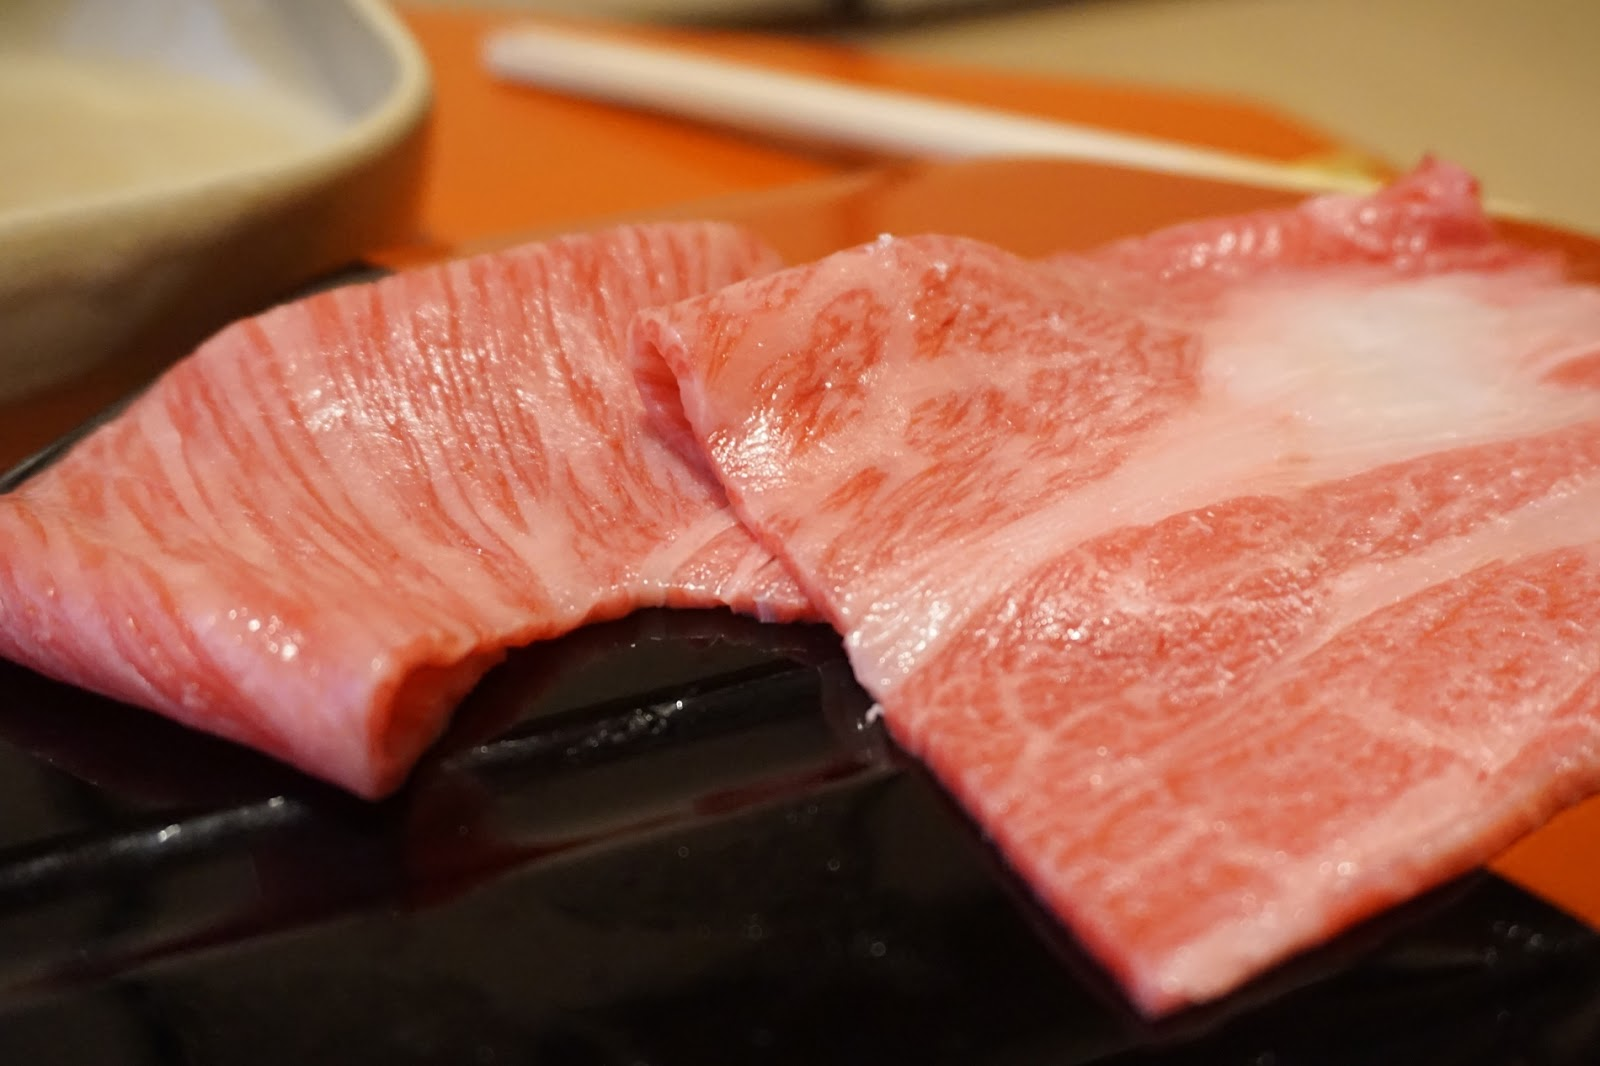 The Ultimate in Japanese Steak: Out of Bounds Food!